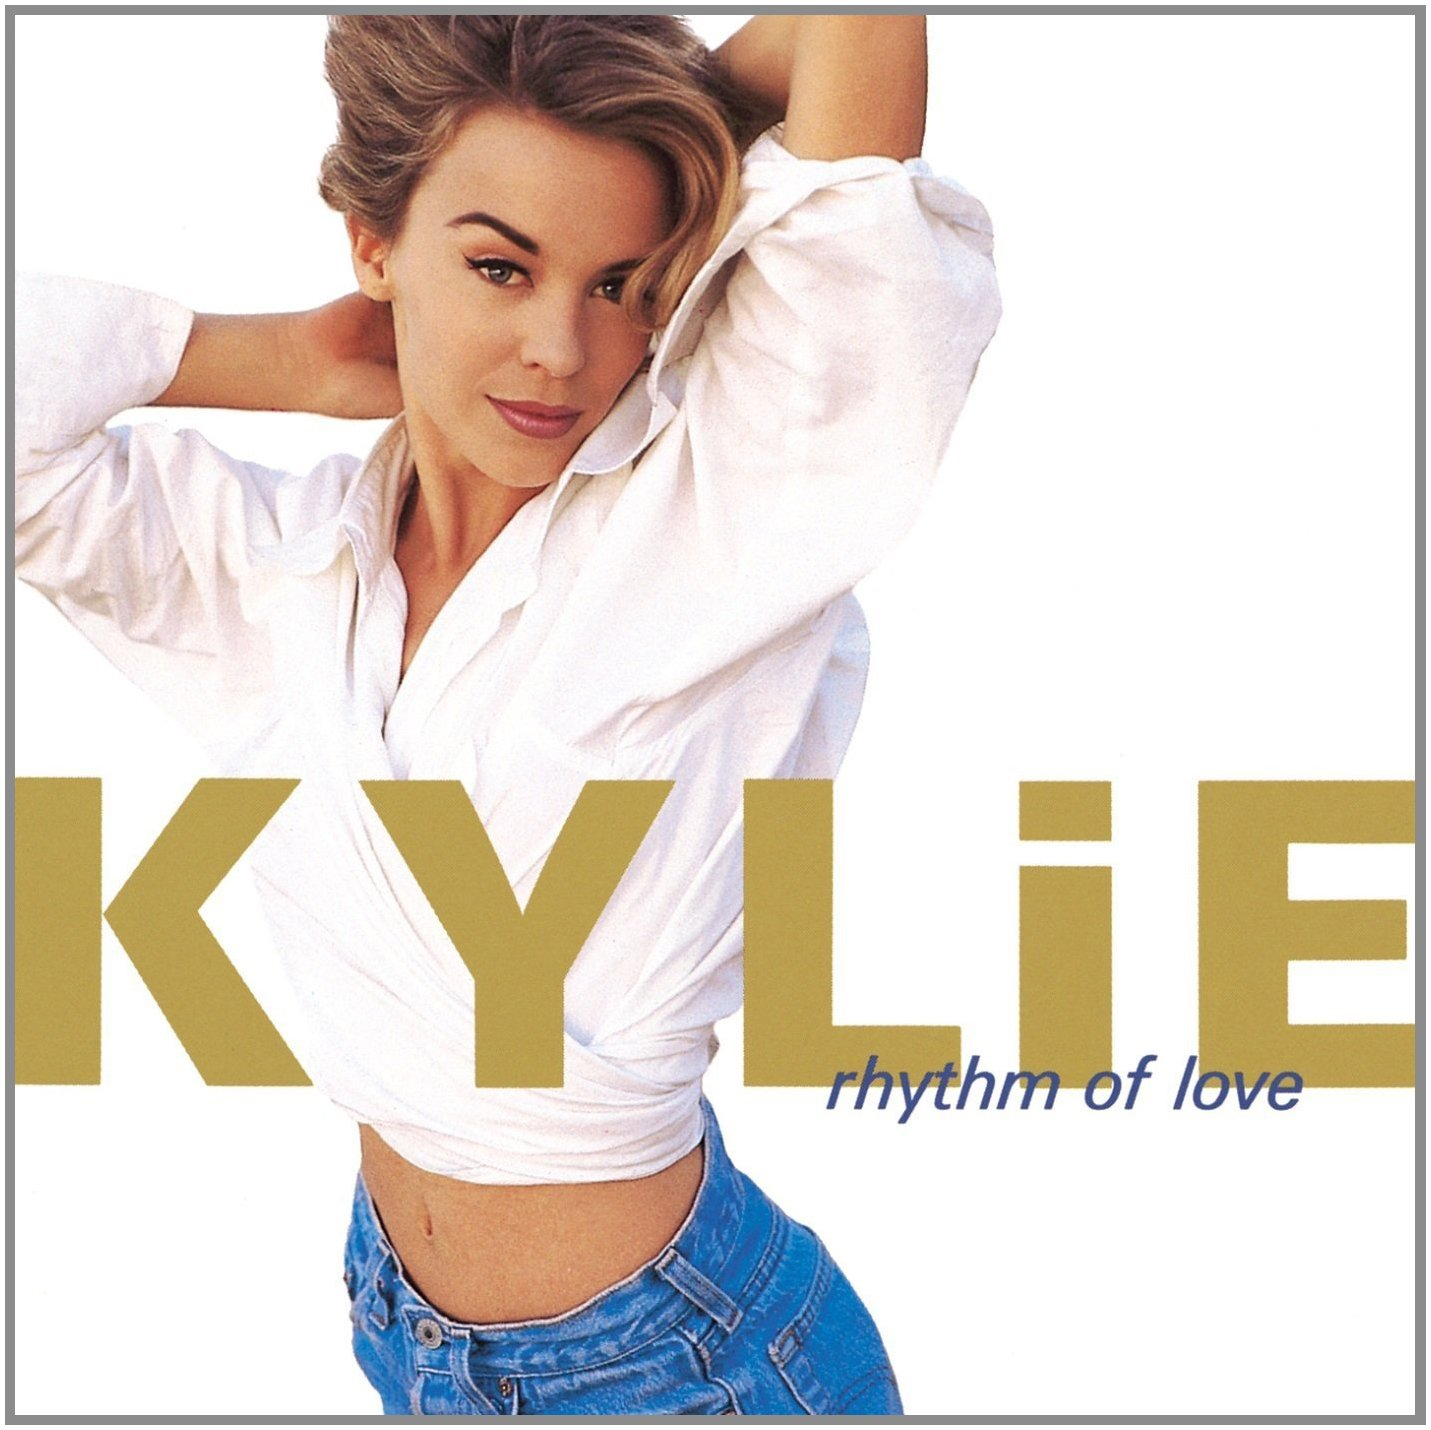 CD : Kylie Minogue - Rhythm of Love (With DVD, Deluxe Edition, 3 Disc)